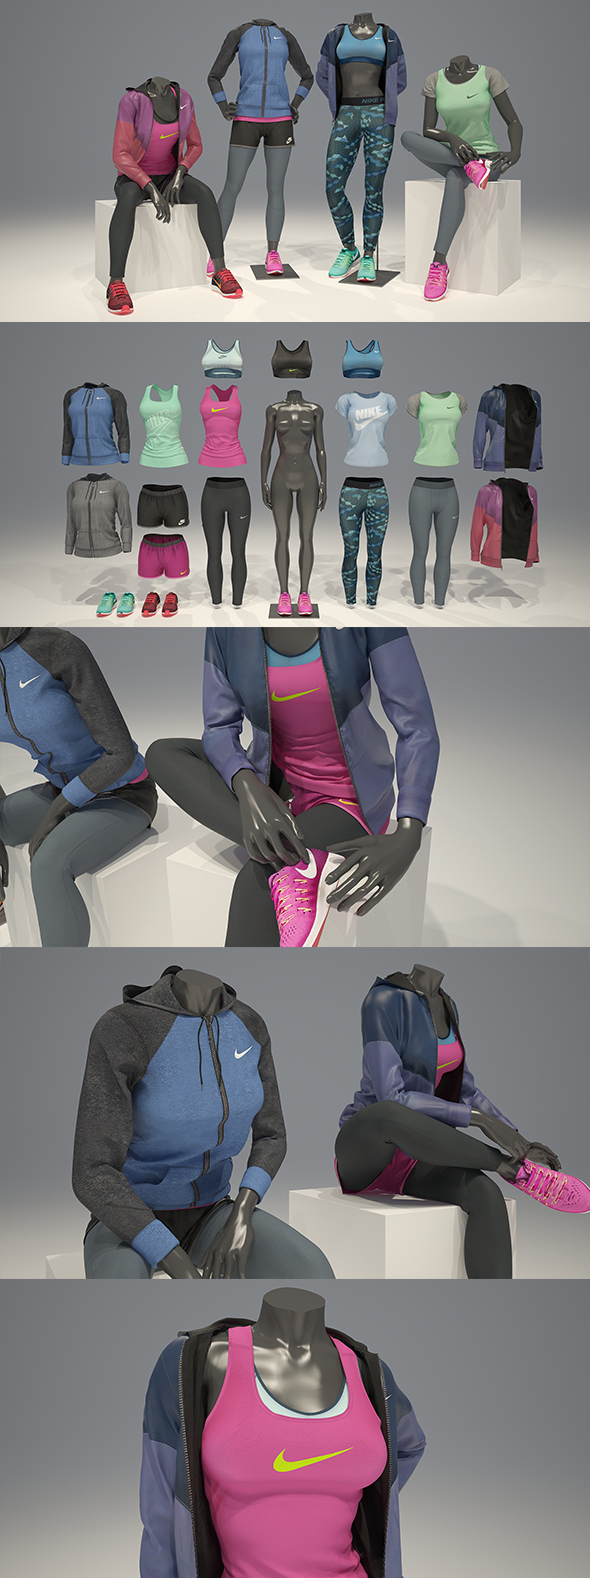 3DOcean Female mannequin Nike pack 3 3D model 21087429